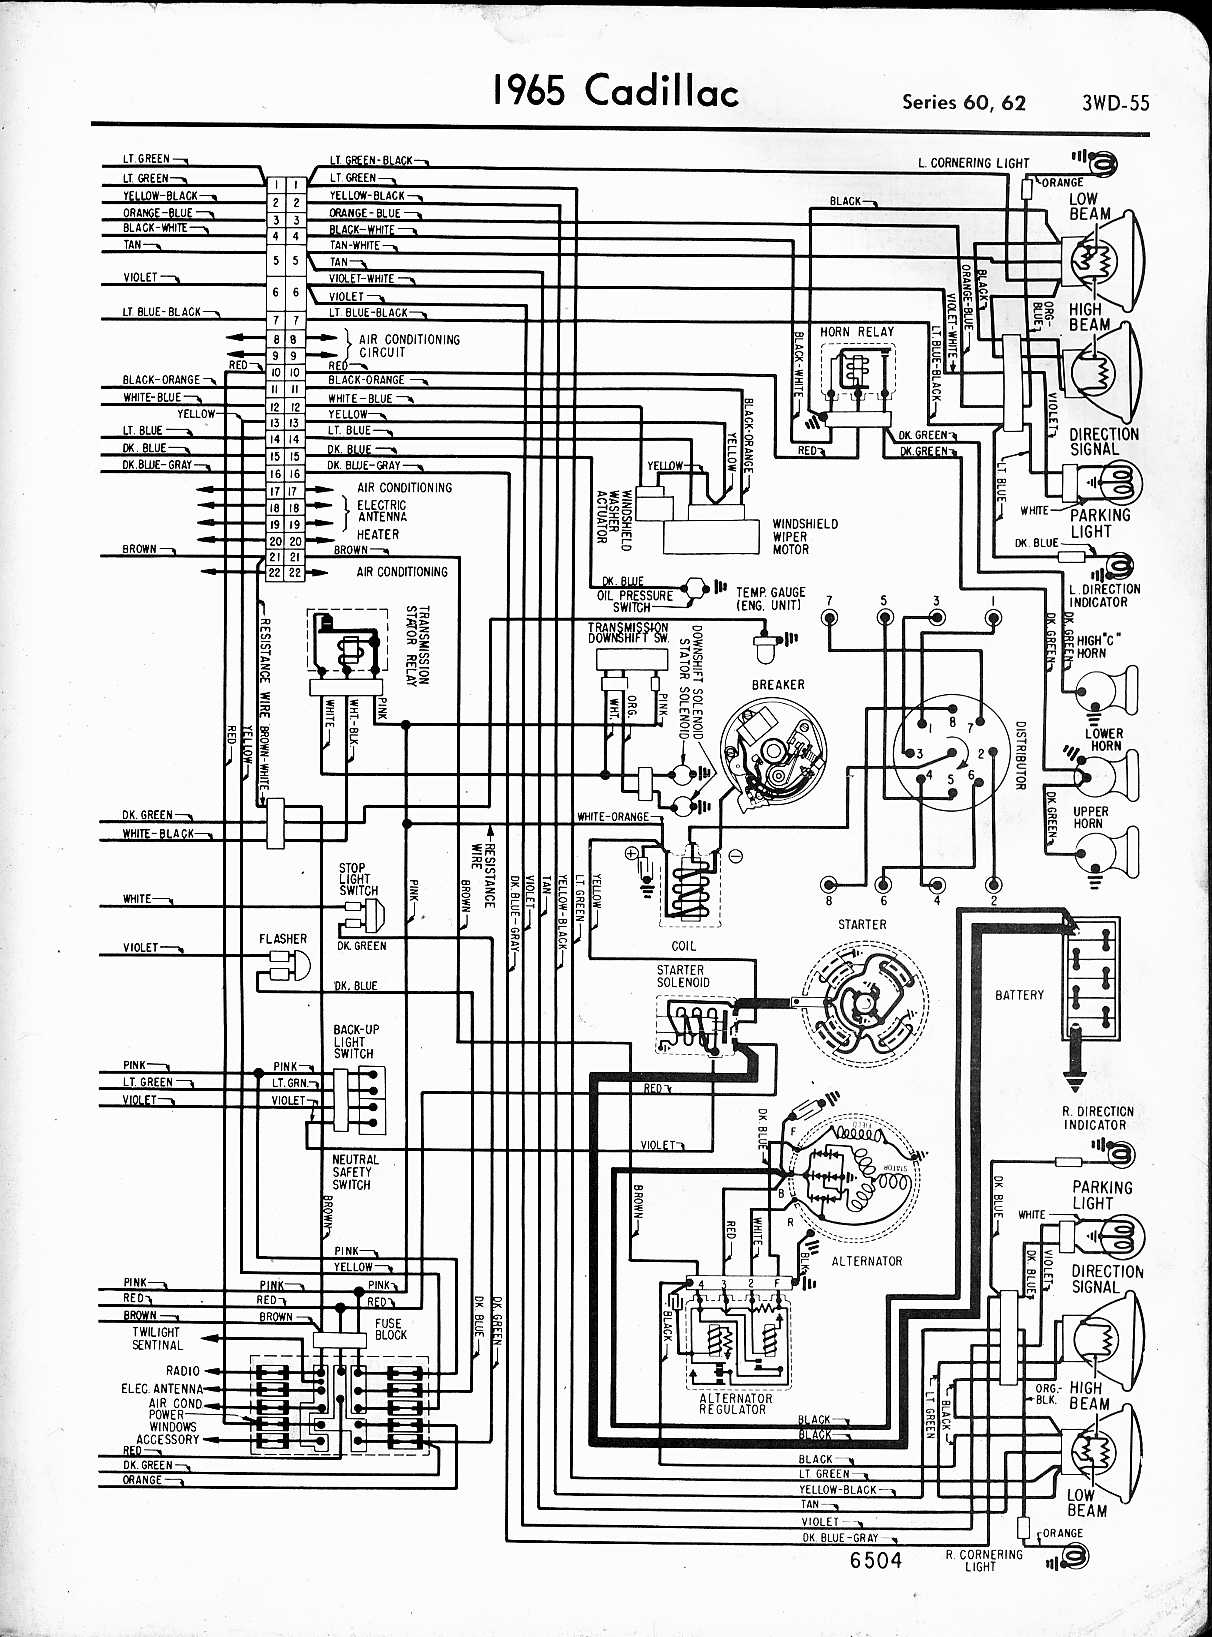 Fuse Box 94 Cadillac Deville | Wiring Diagram  Pin Alternator Wiring Diagram Cadillac Deville on